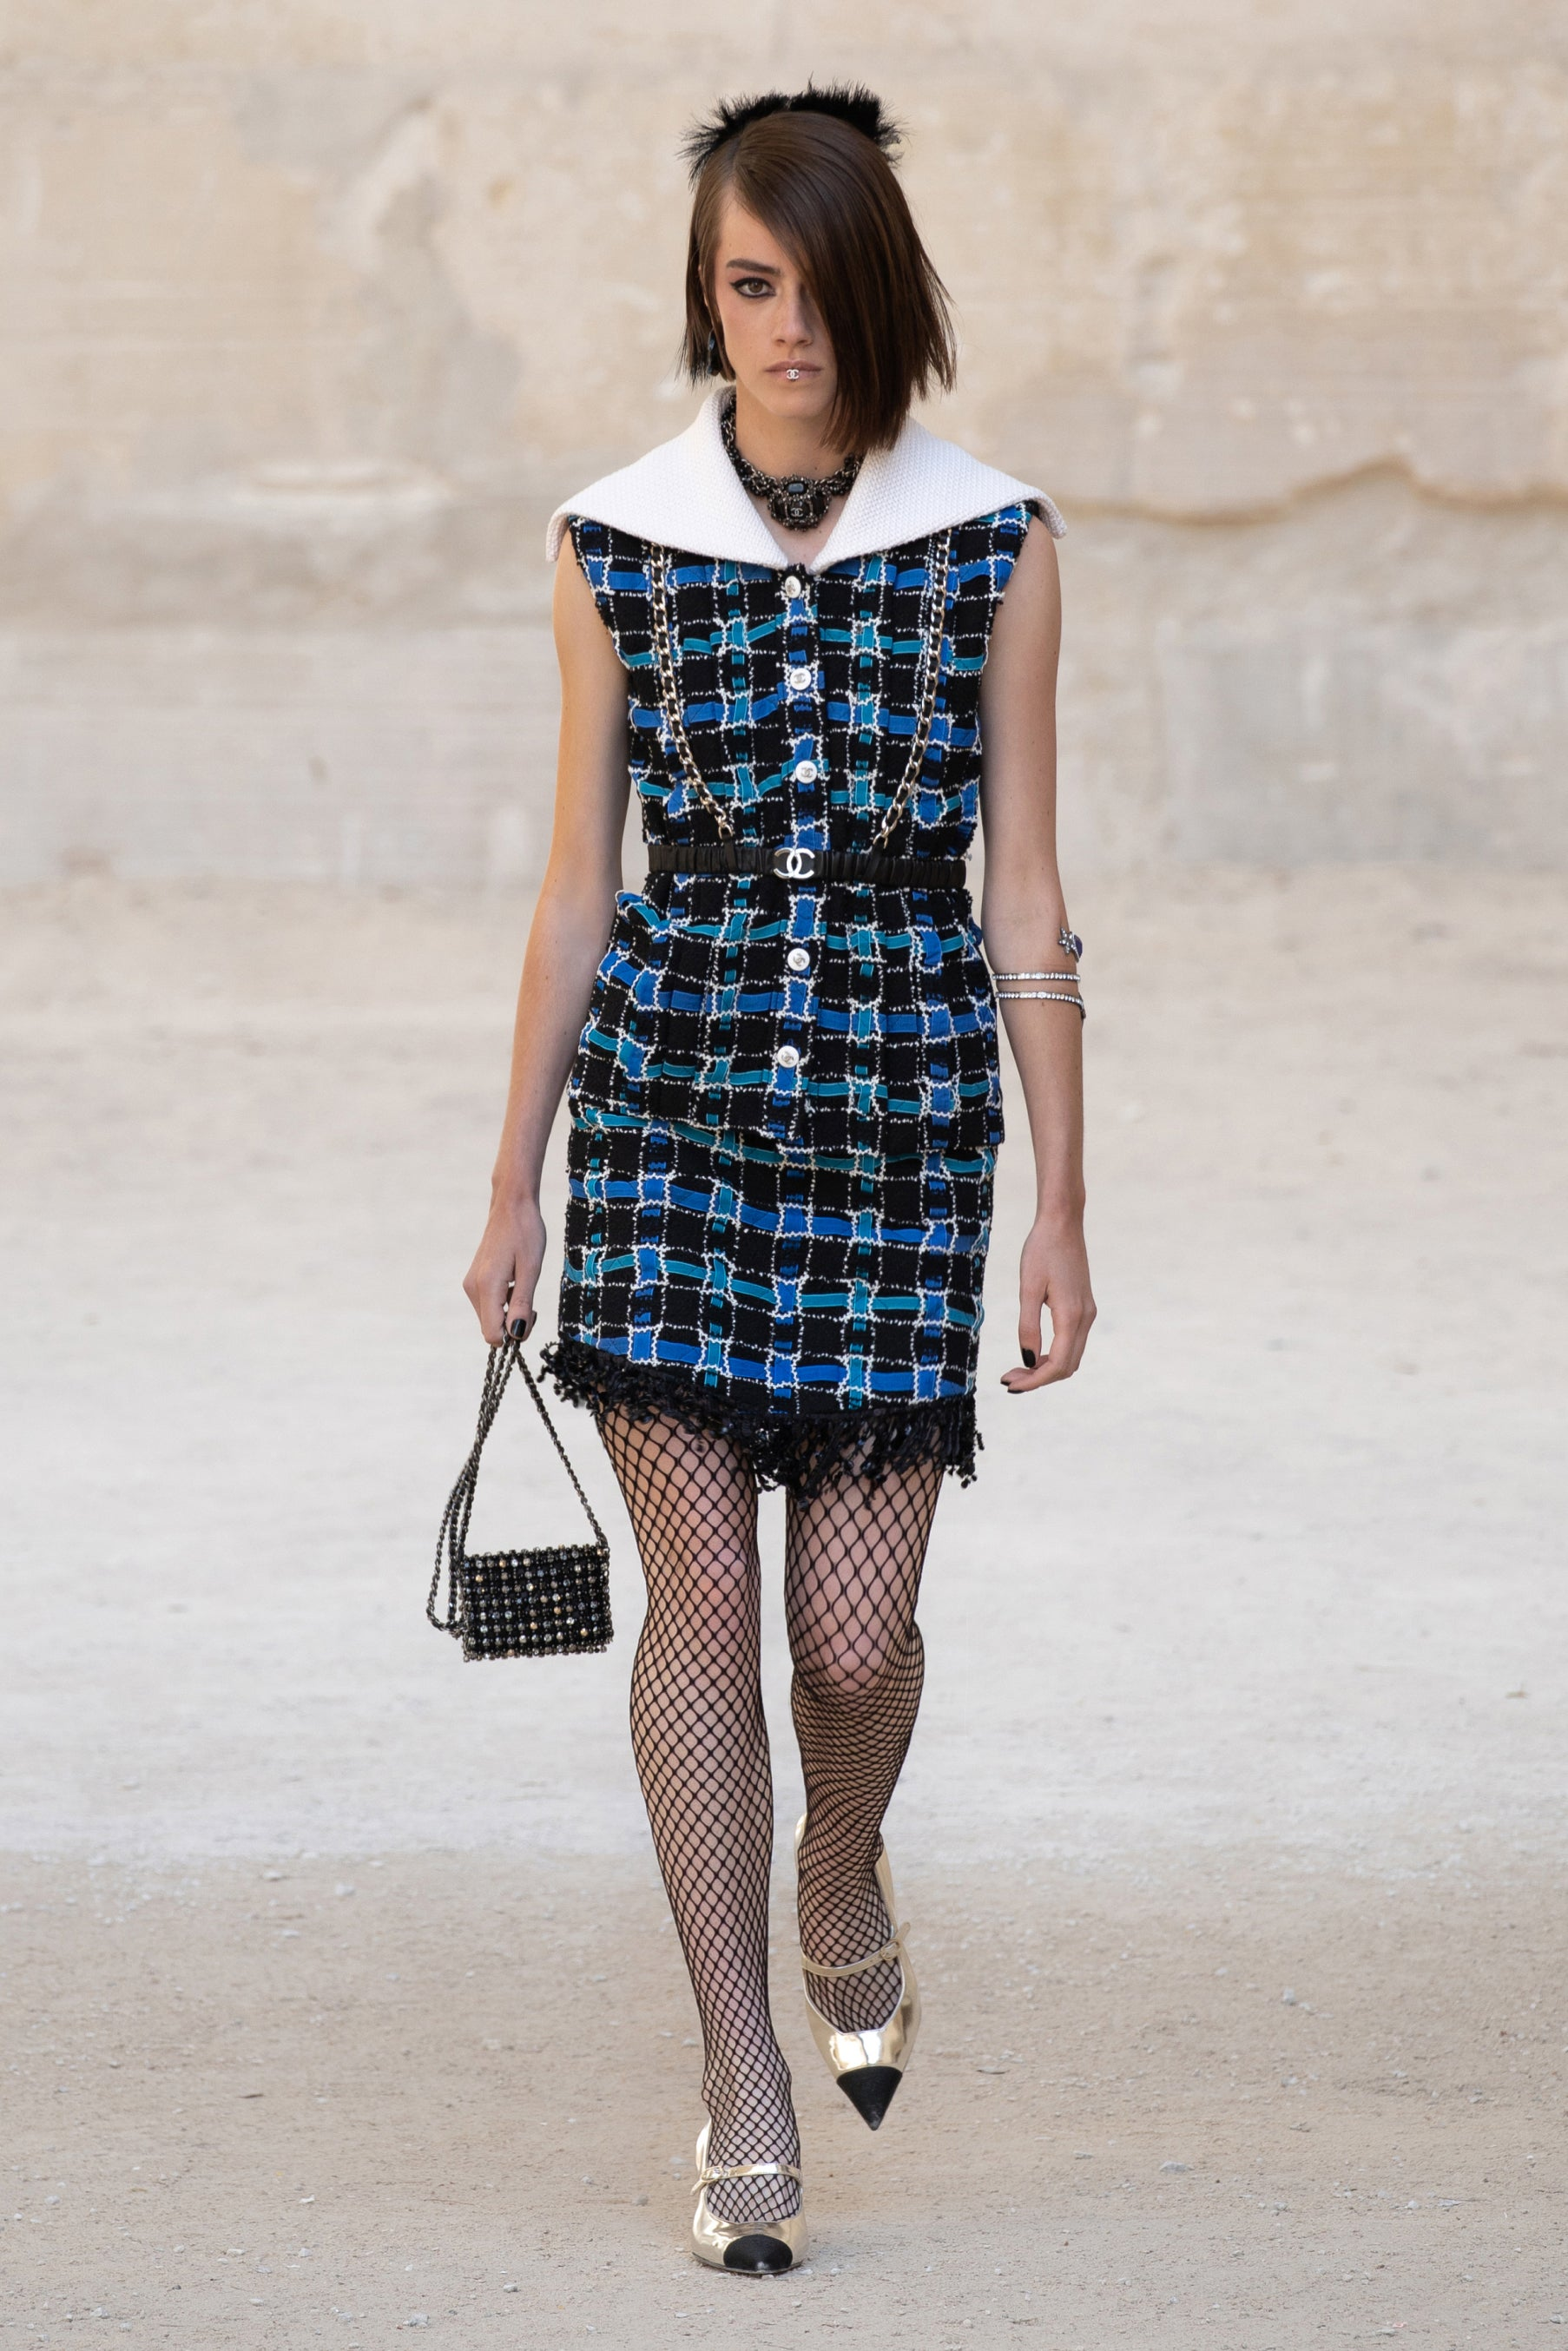 Chanel's Punk-Inspired Show Featured Garter Bags, Harnesses & Fishnets